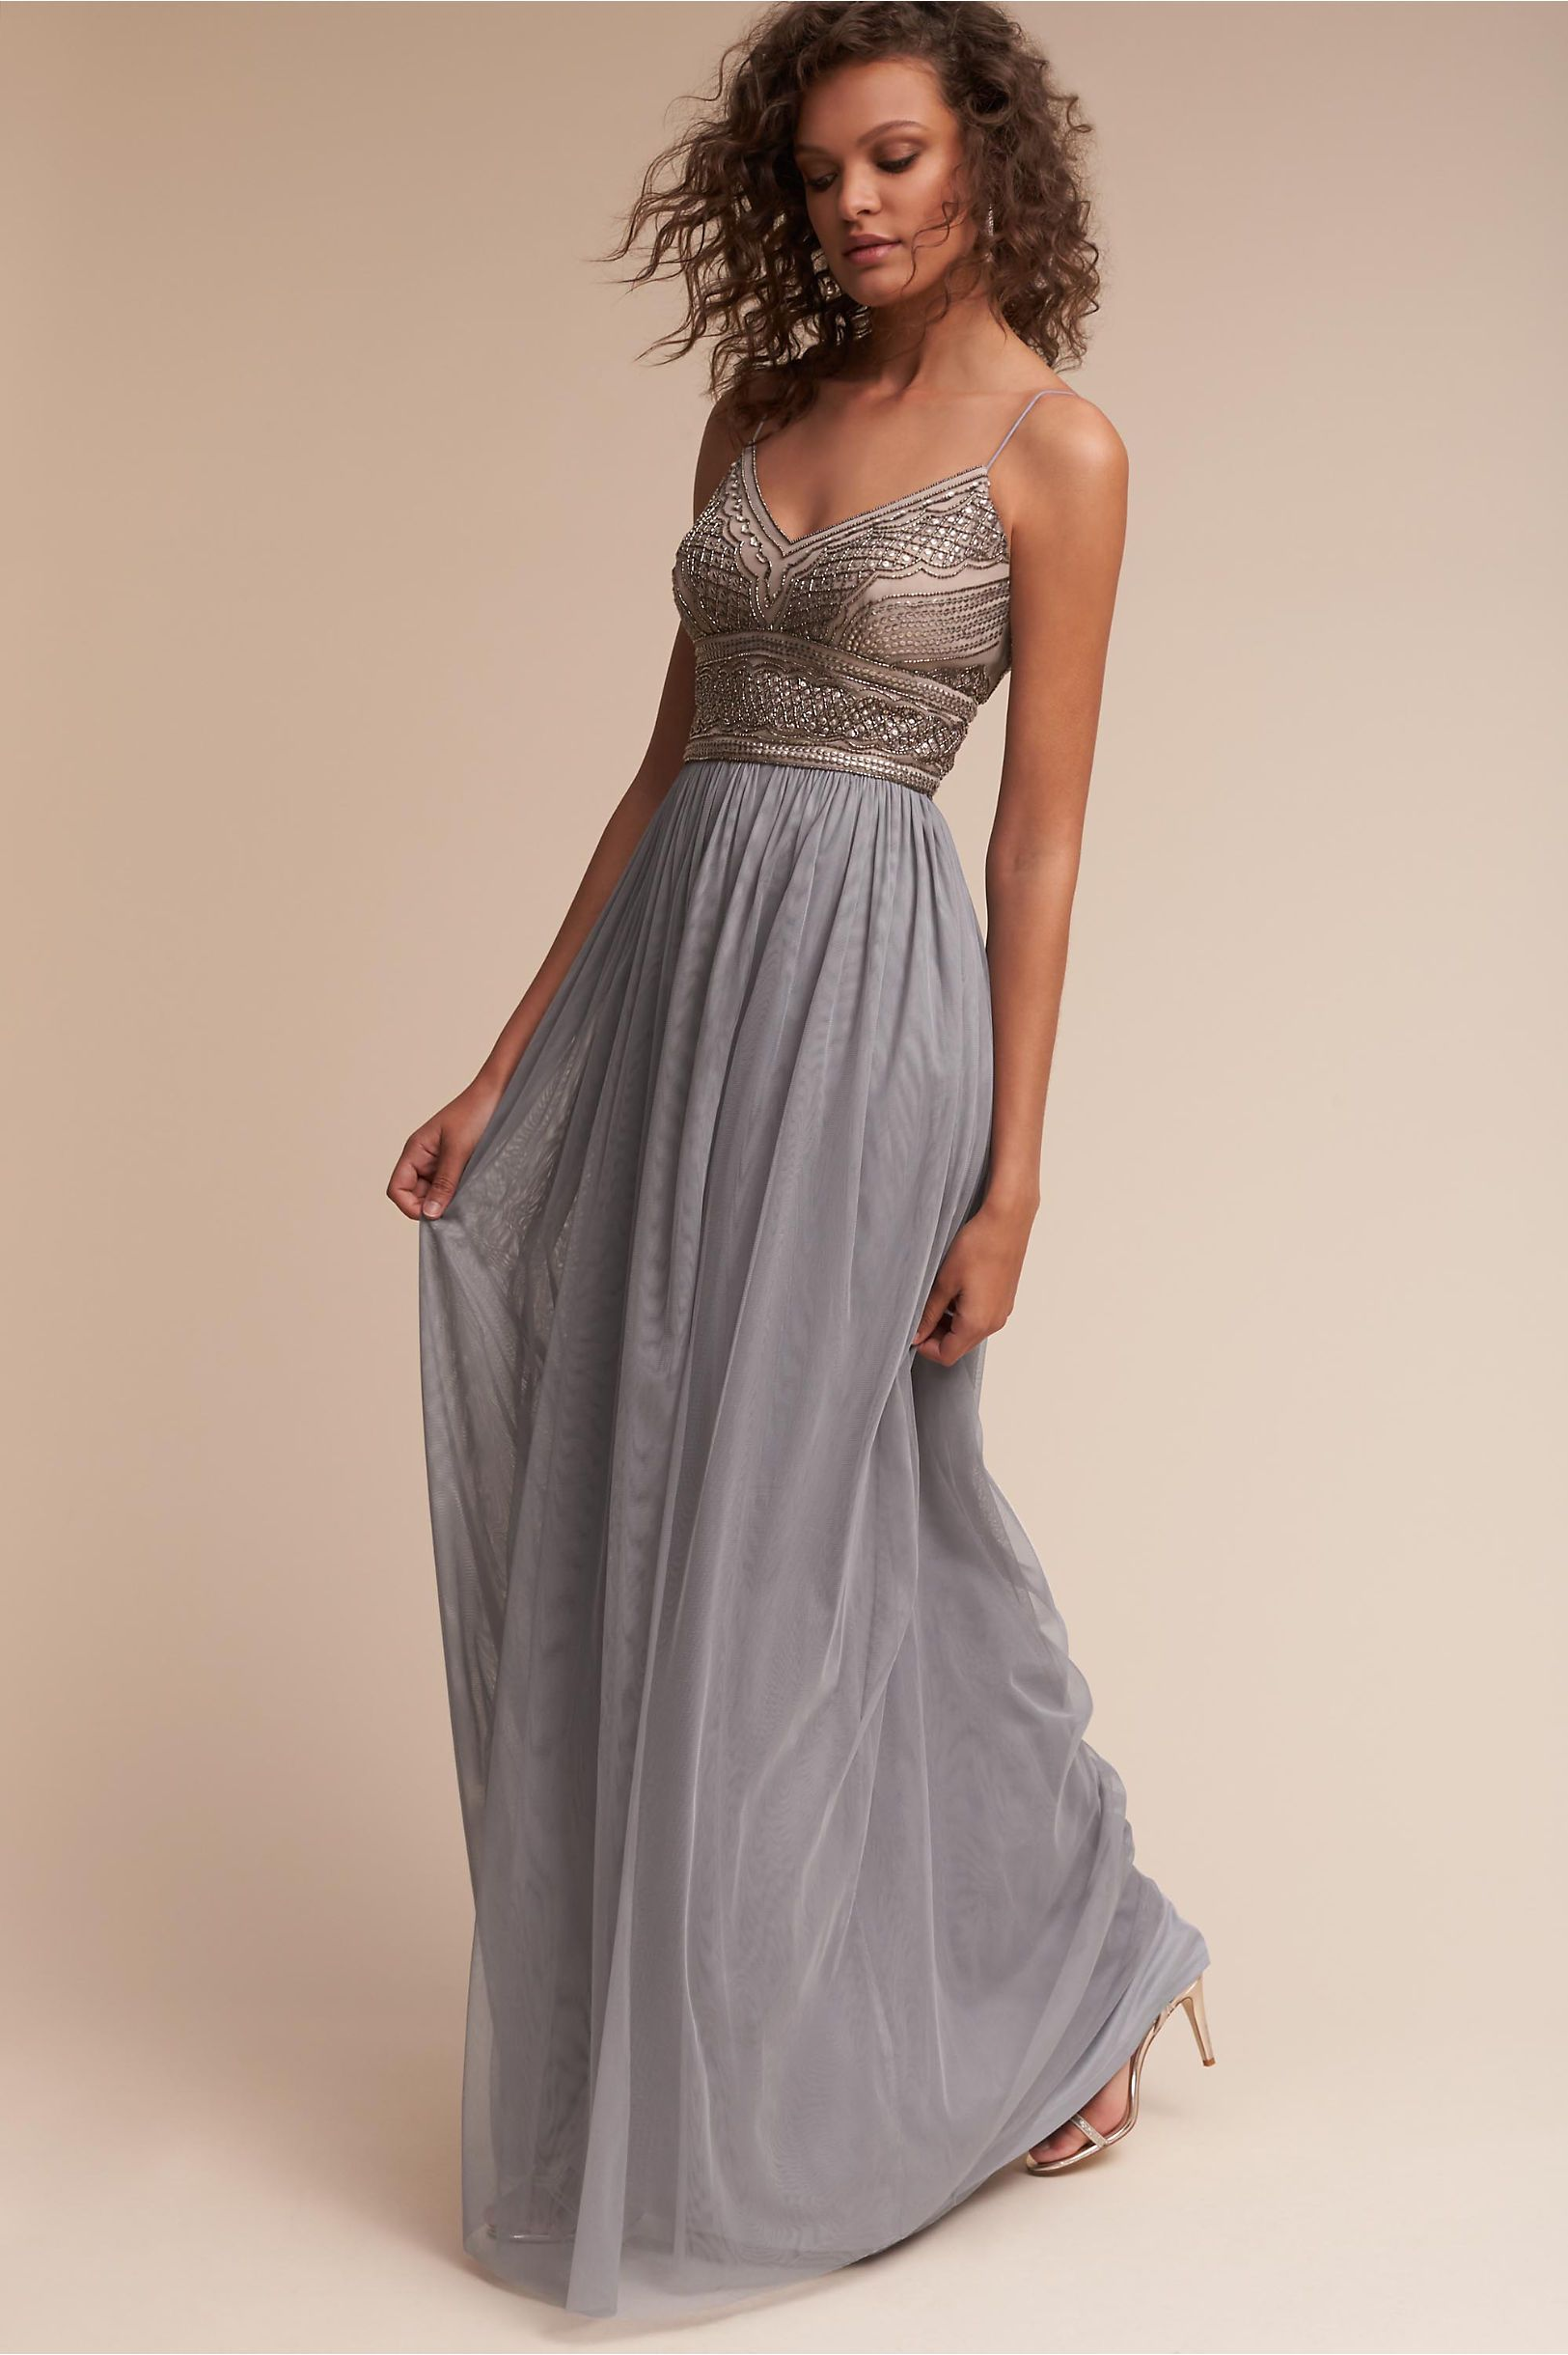 416132a543 BHLDN s Adrianna Papell Aida Dress in Silver Grey